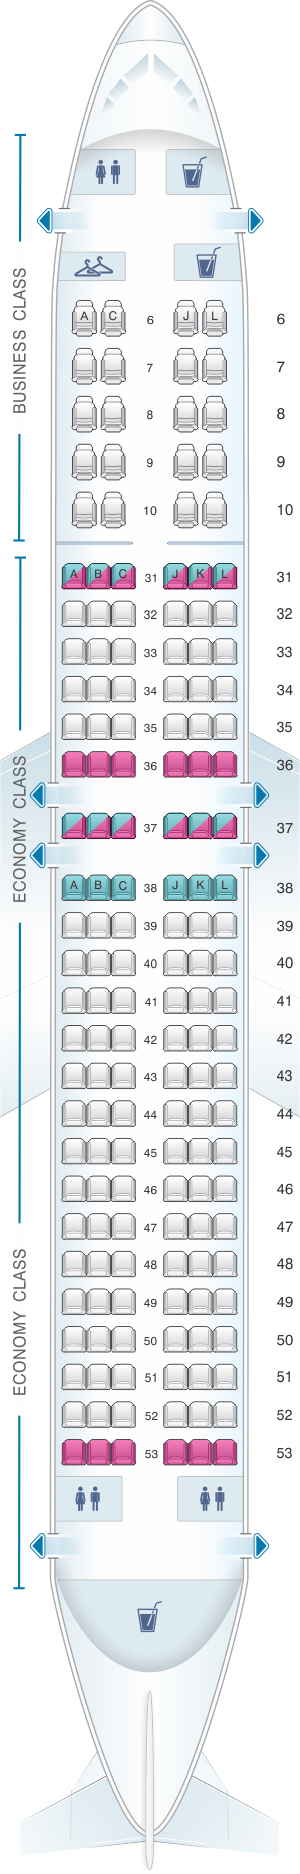 Seat map for China Eastern Airlines Boeing B737 800 158PAX